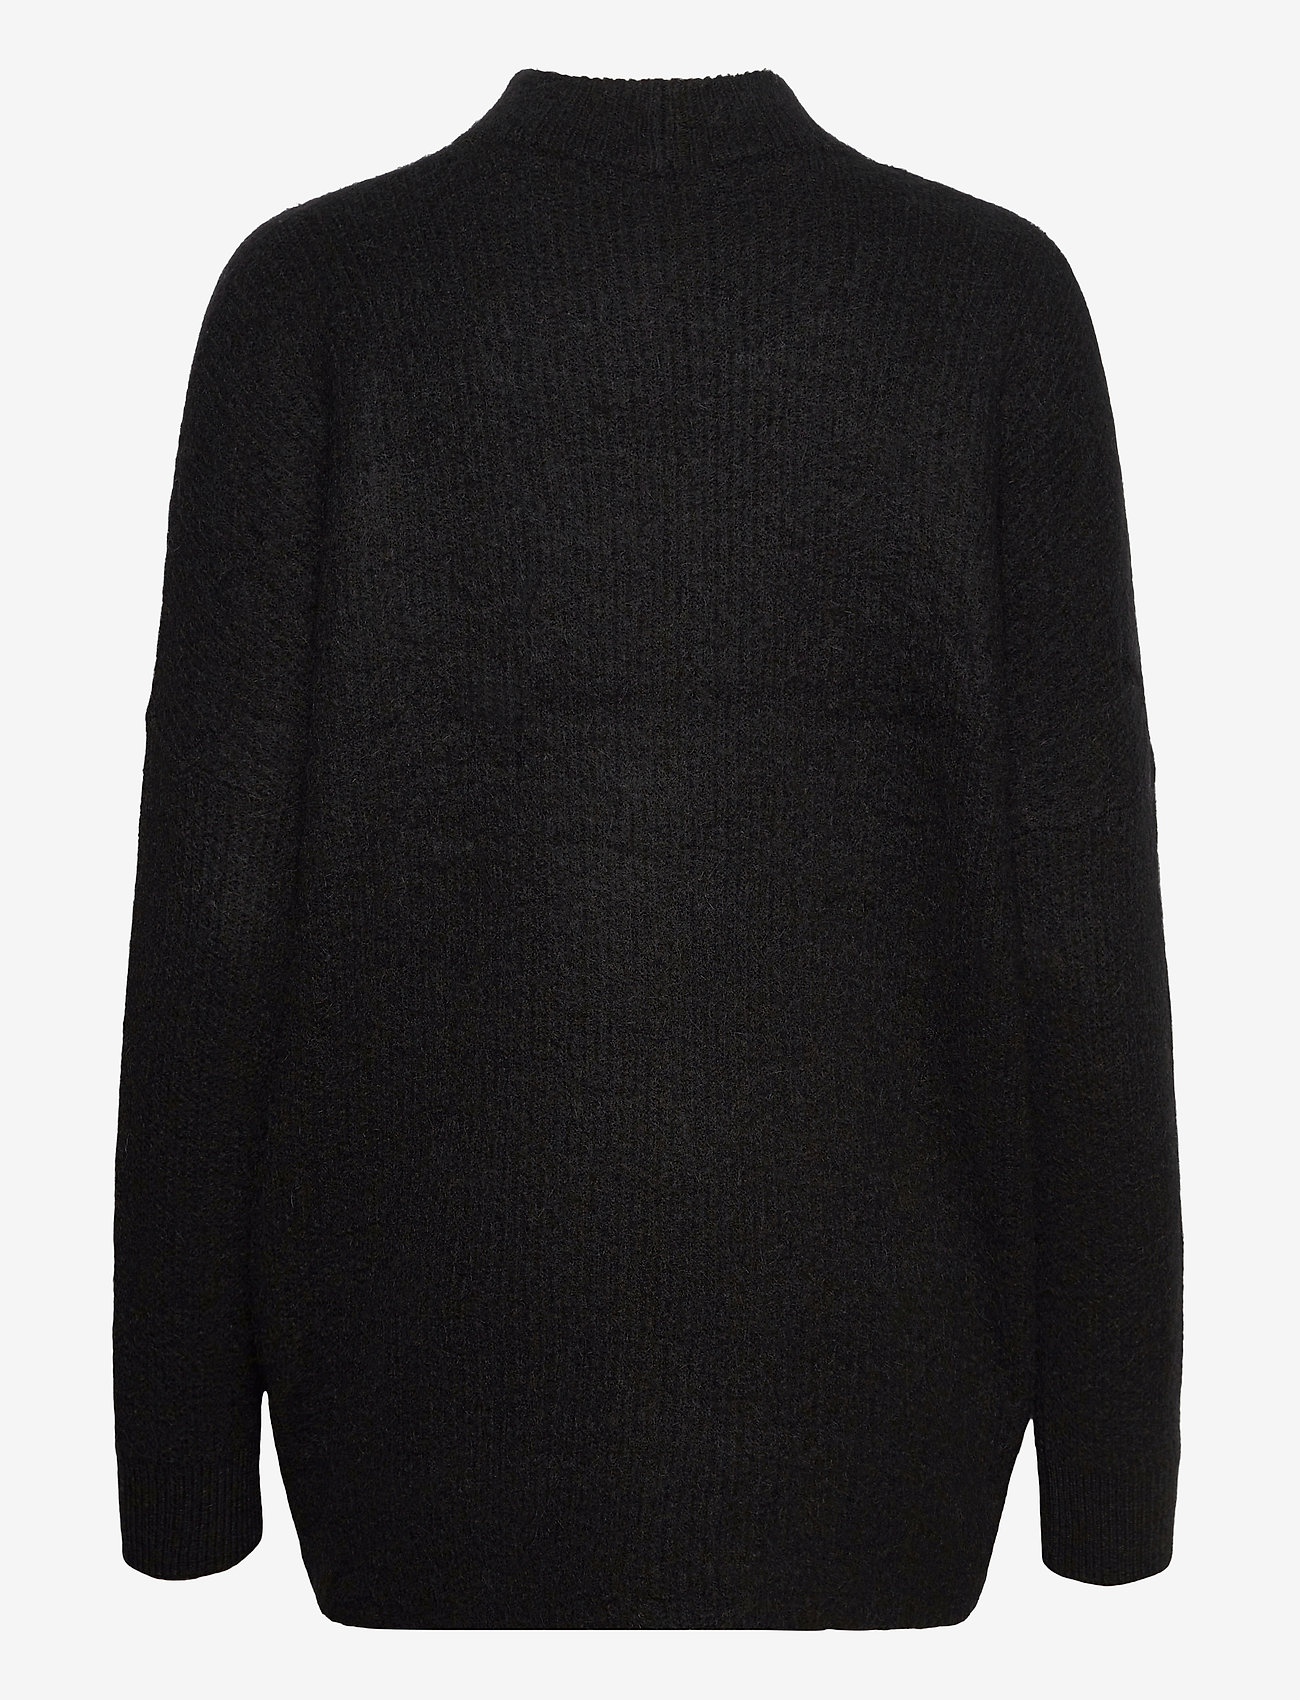 Selected Femme - SLFLULU ENICA LS KNIT O-NECK - truien - black - 1